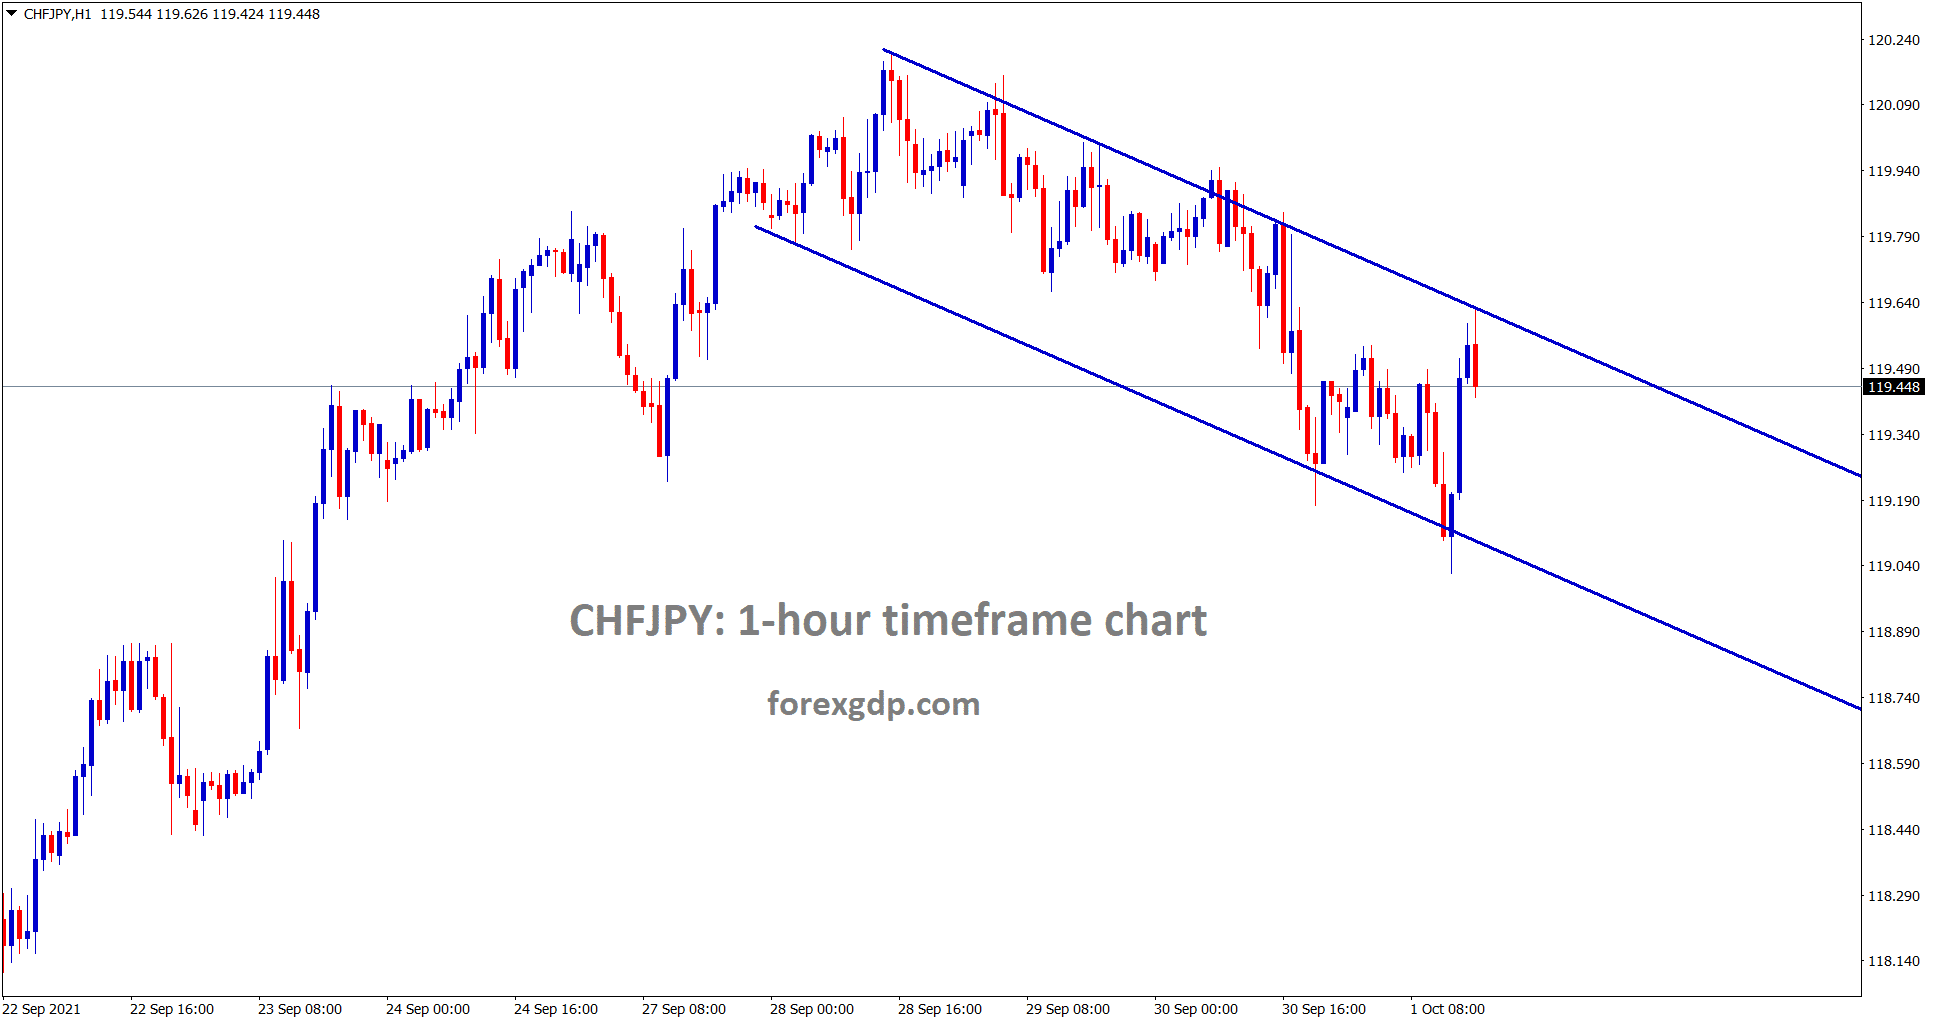 CHFJPY is moving in a minor descending channel in the 1 hour timeframe